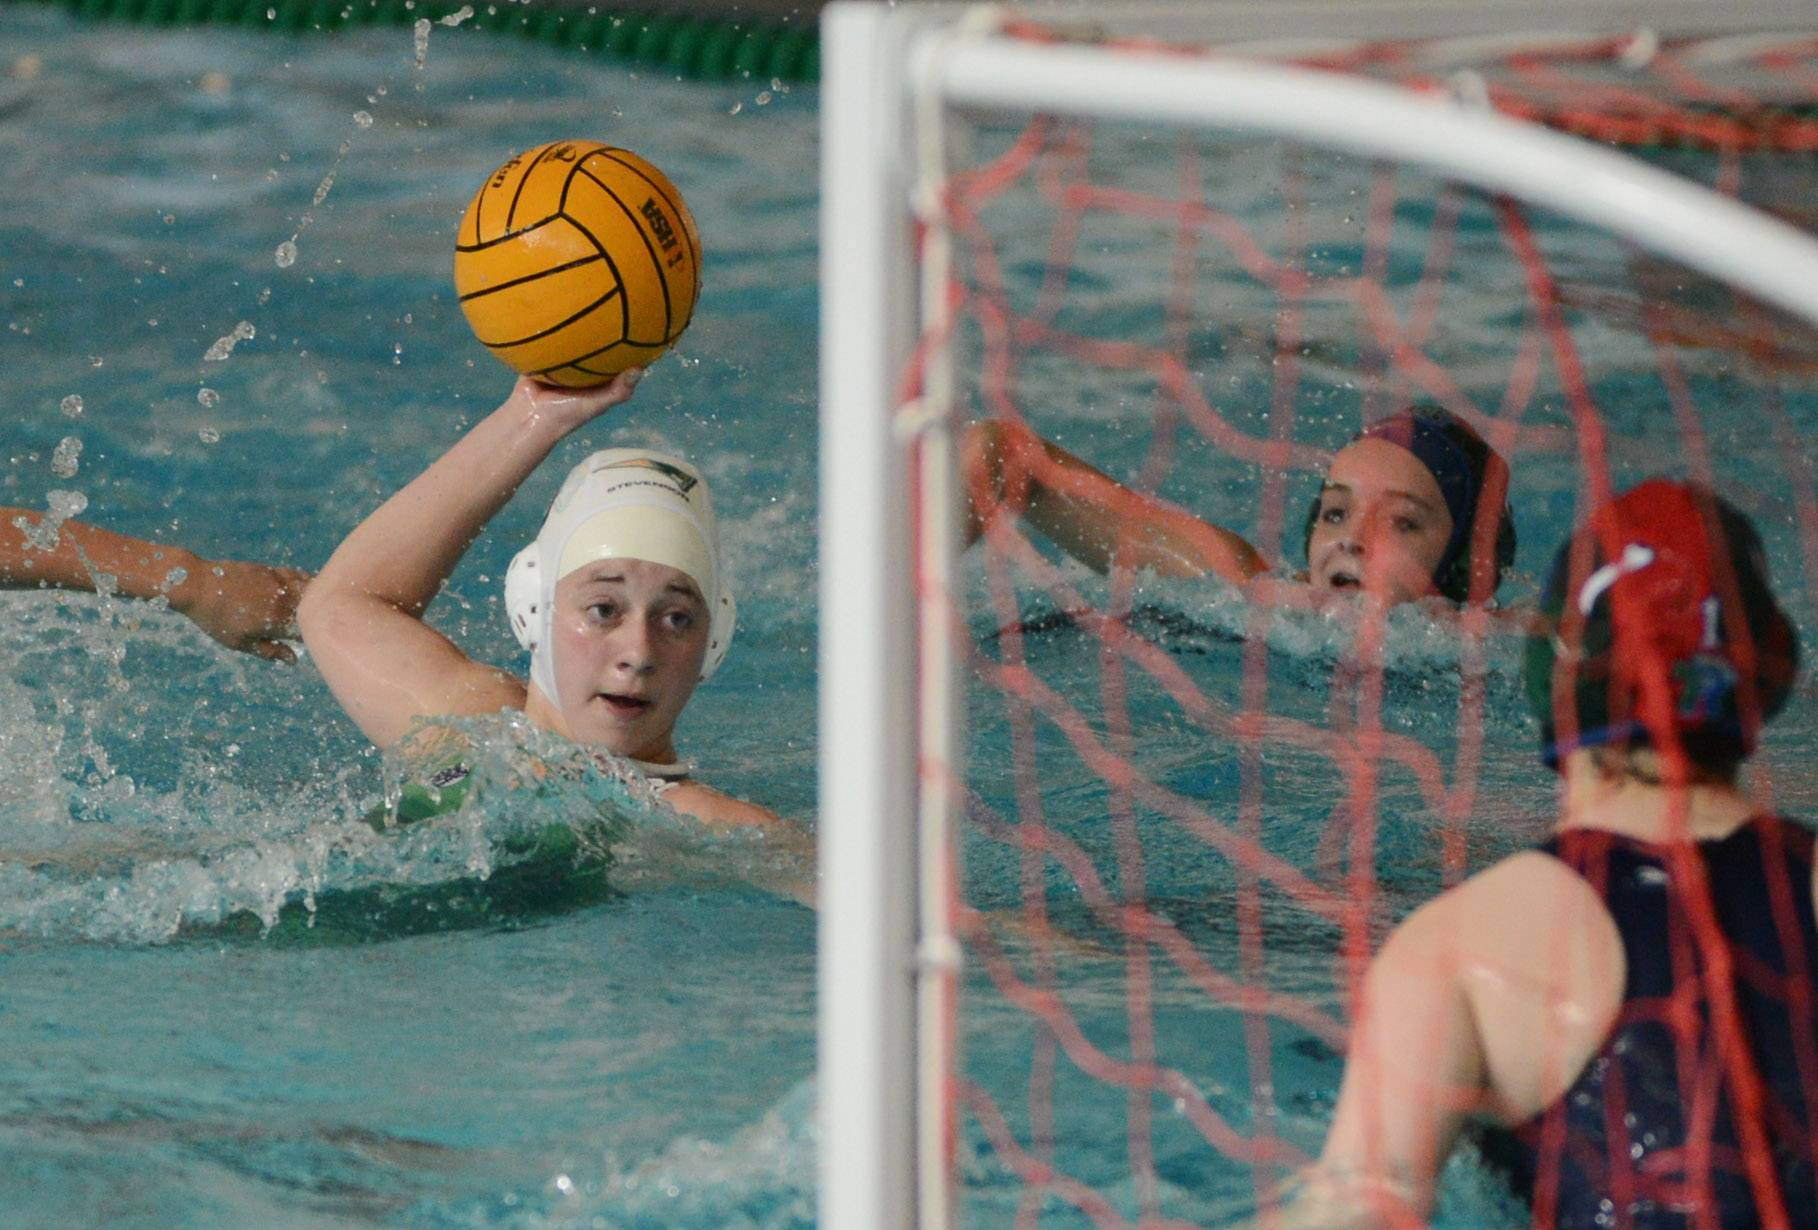 Stevenson's Melissa Gartenberg, left, zeroes in on the goal before scoring against New Trier during Friday's state water polo quarterfinal match in Lincolnshire.